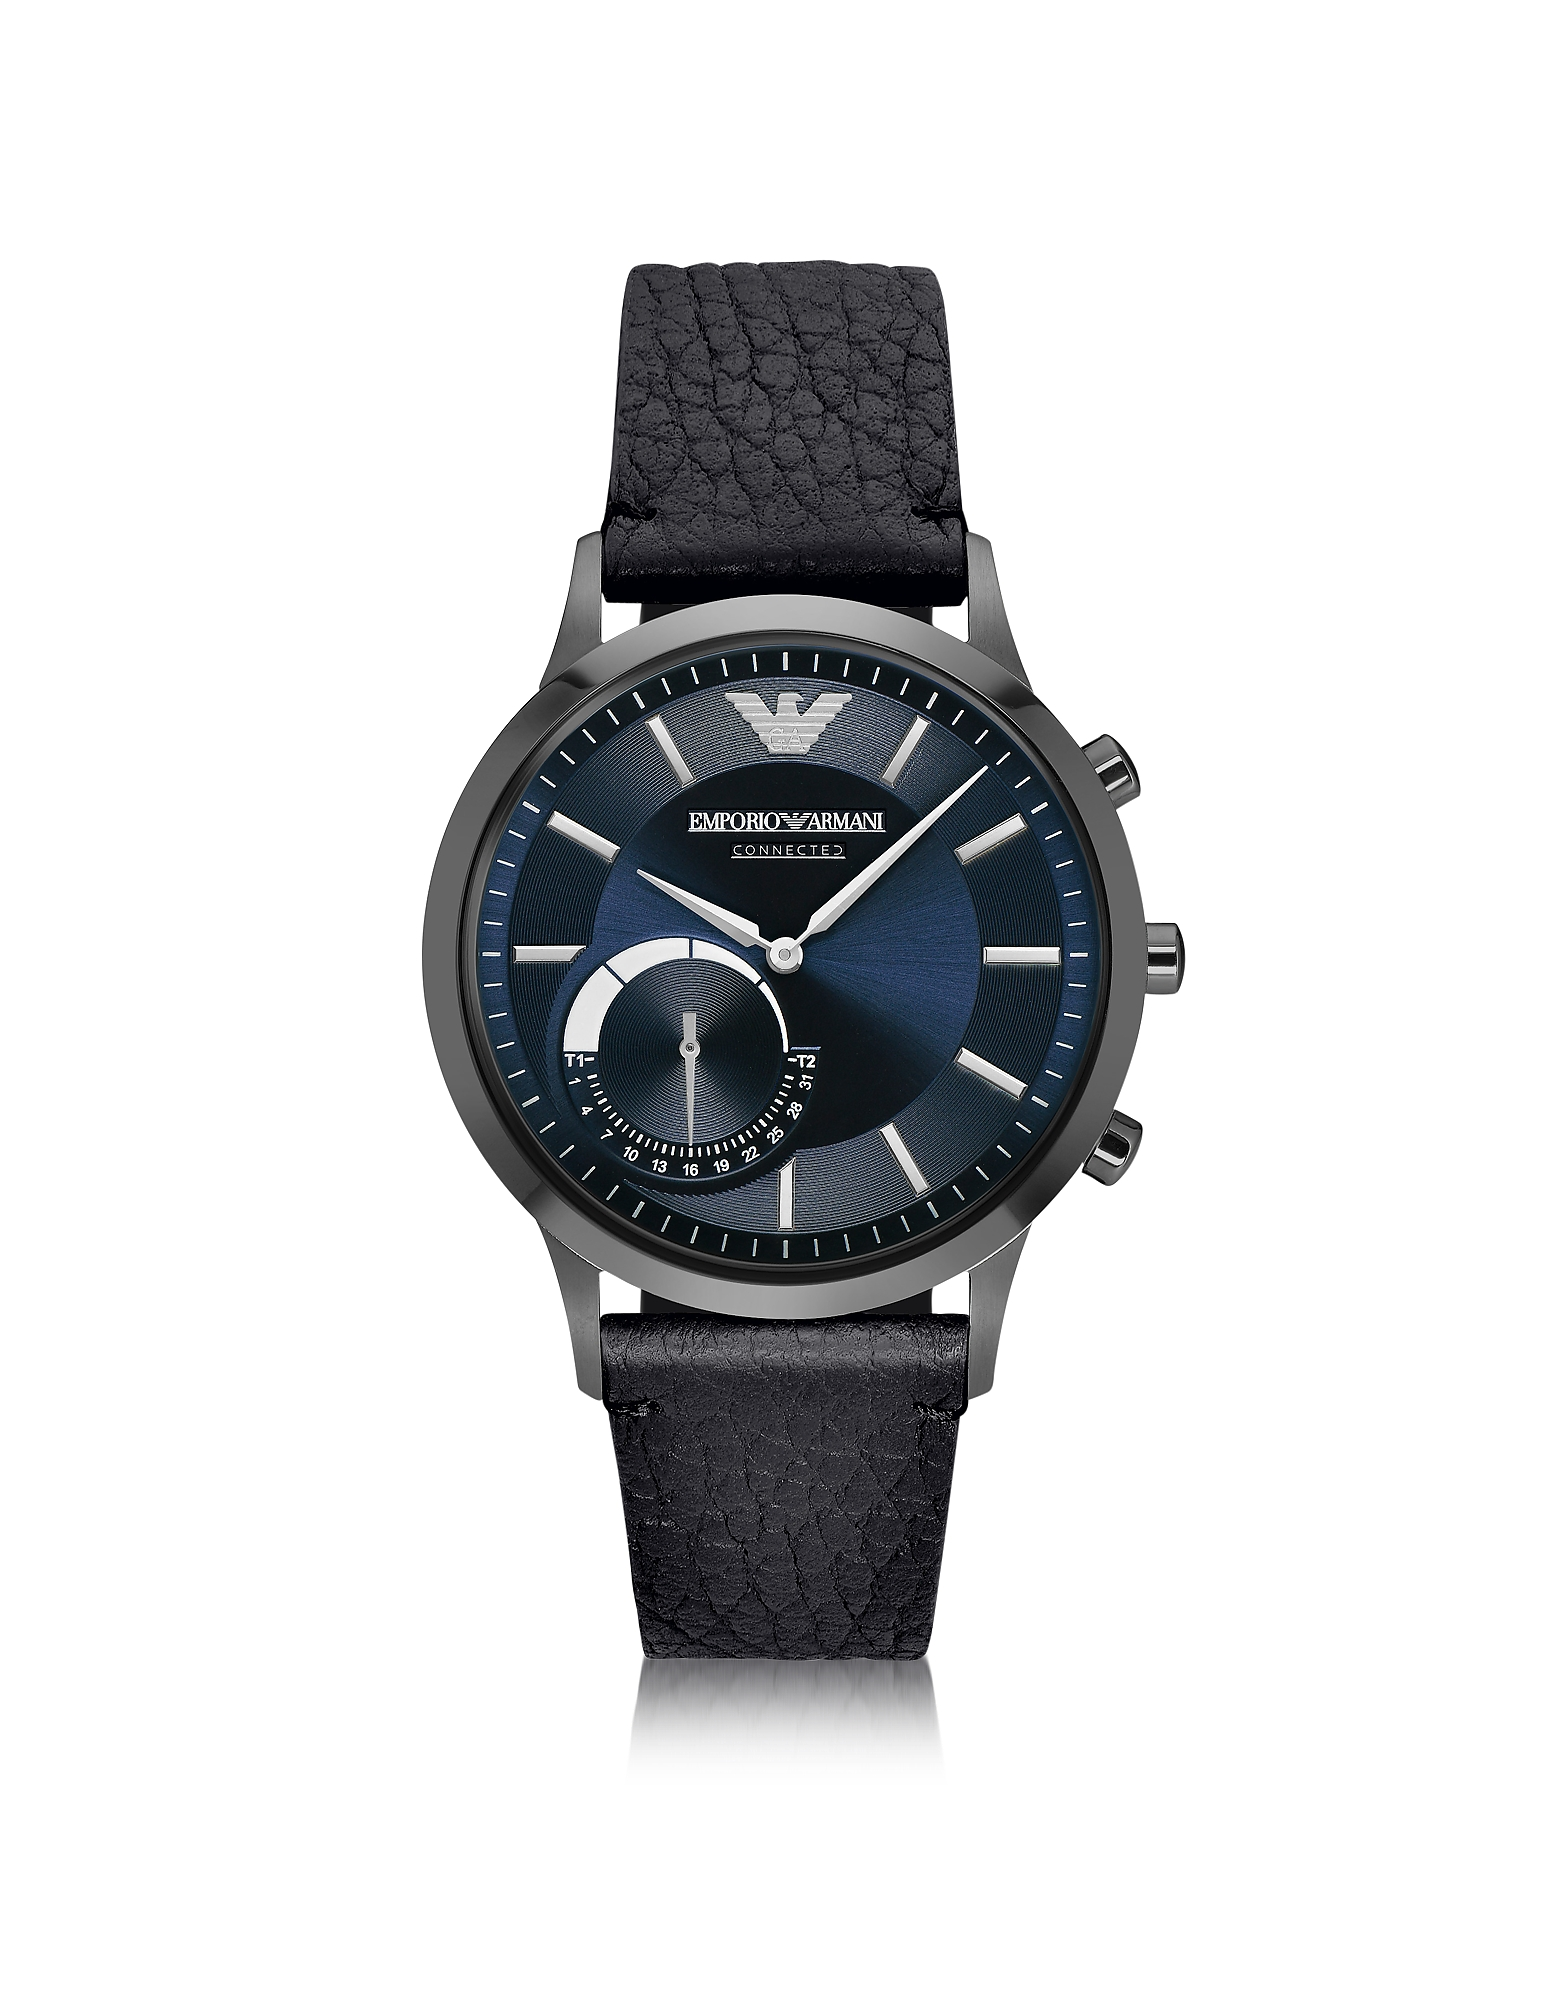 Emporio Armani Men's Watches, Connected Gunmetal PVD Stainless Steel Hibrid Men's Smartwatch w/Leath